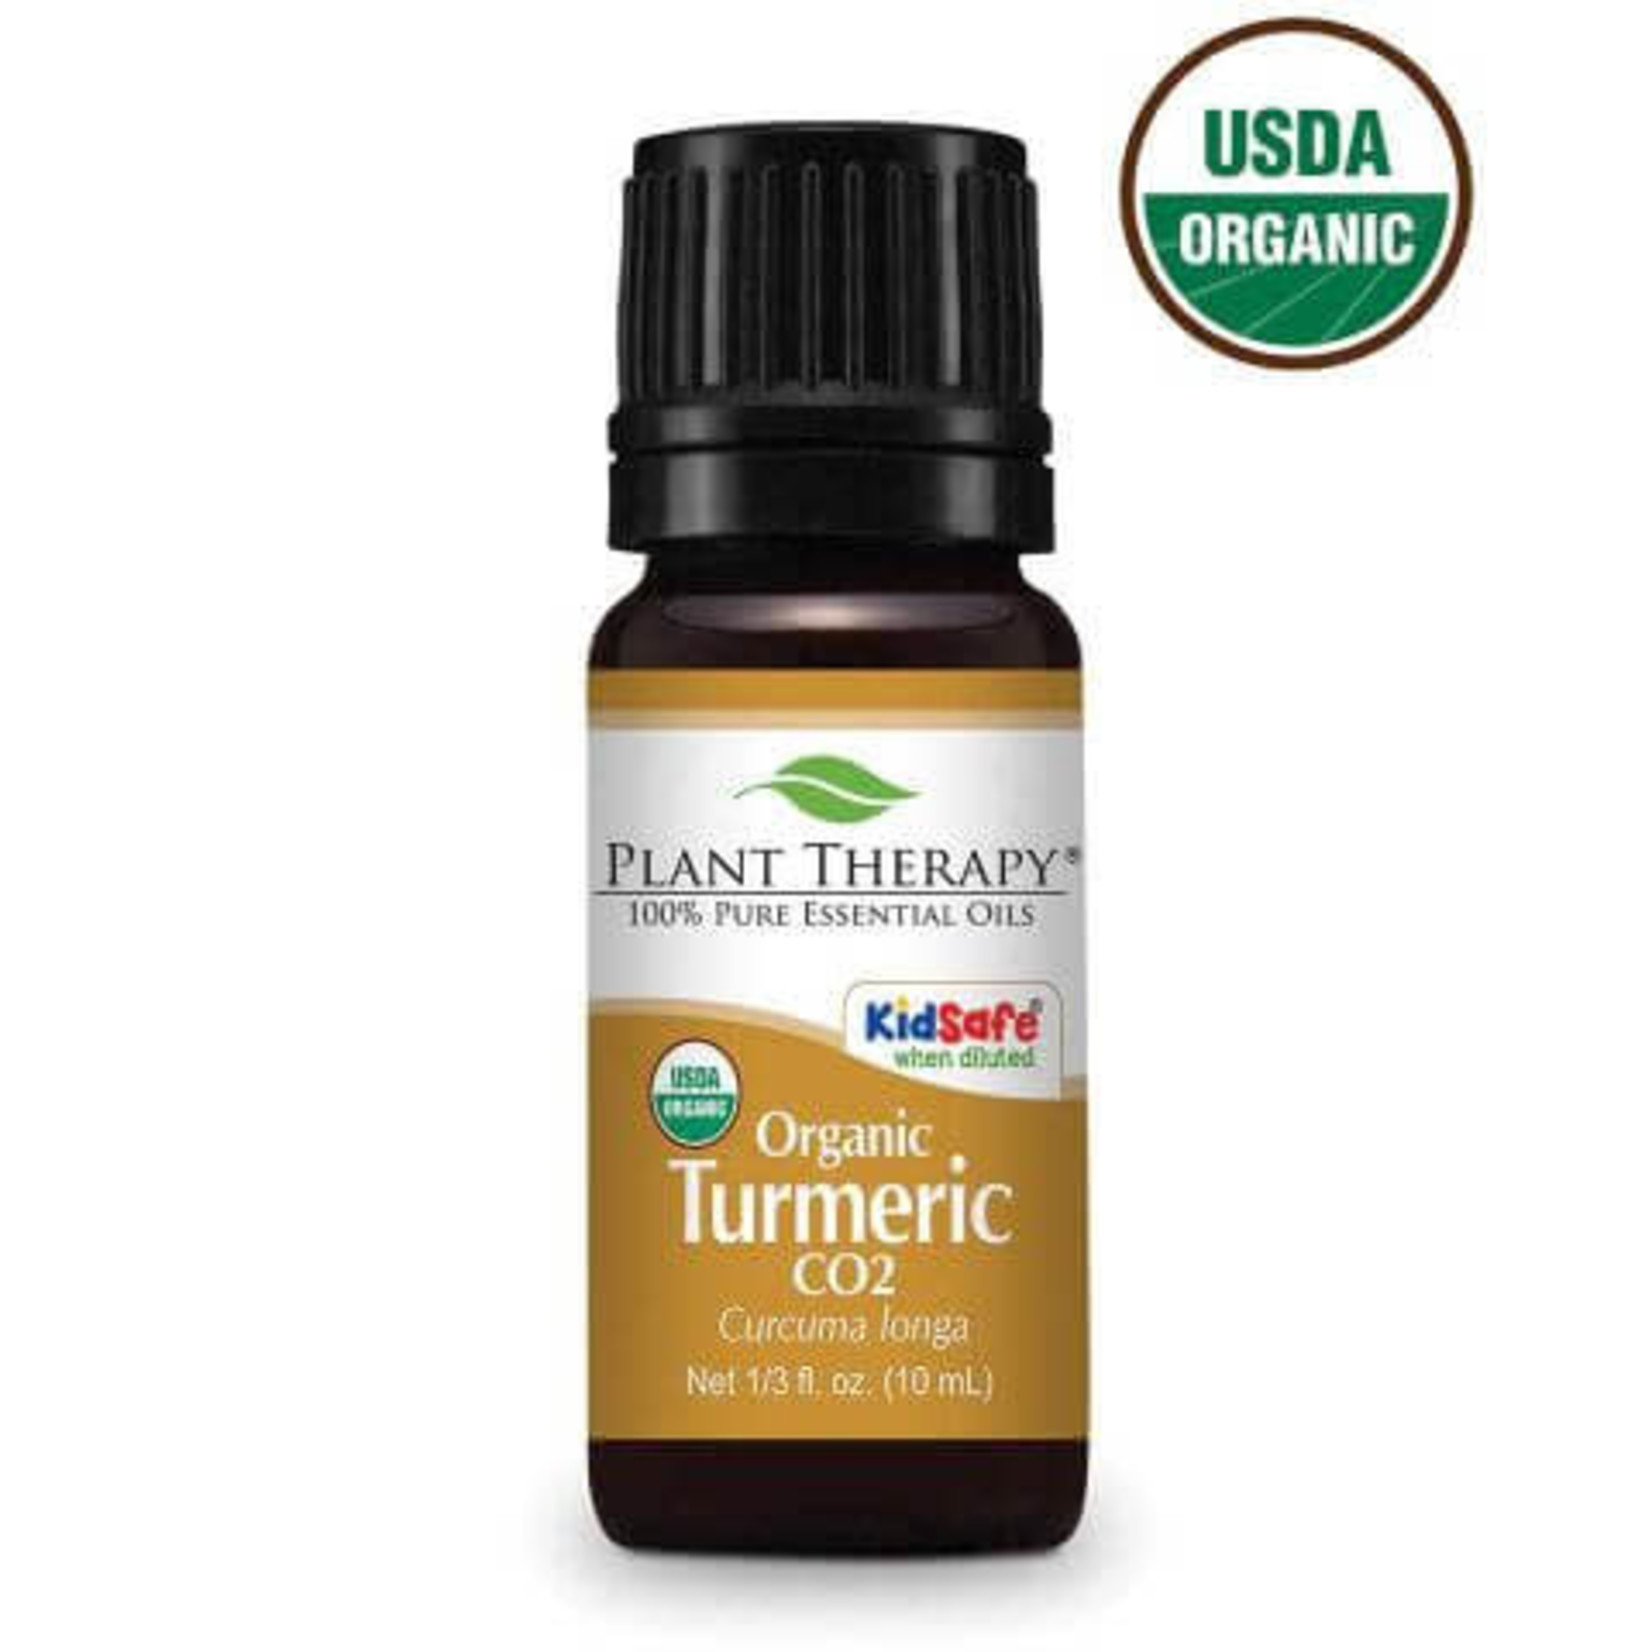 Plant Therapy PT Turmeric CO2 Extract Organic Essential Oil 10ml